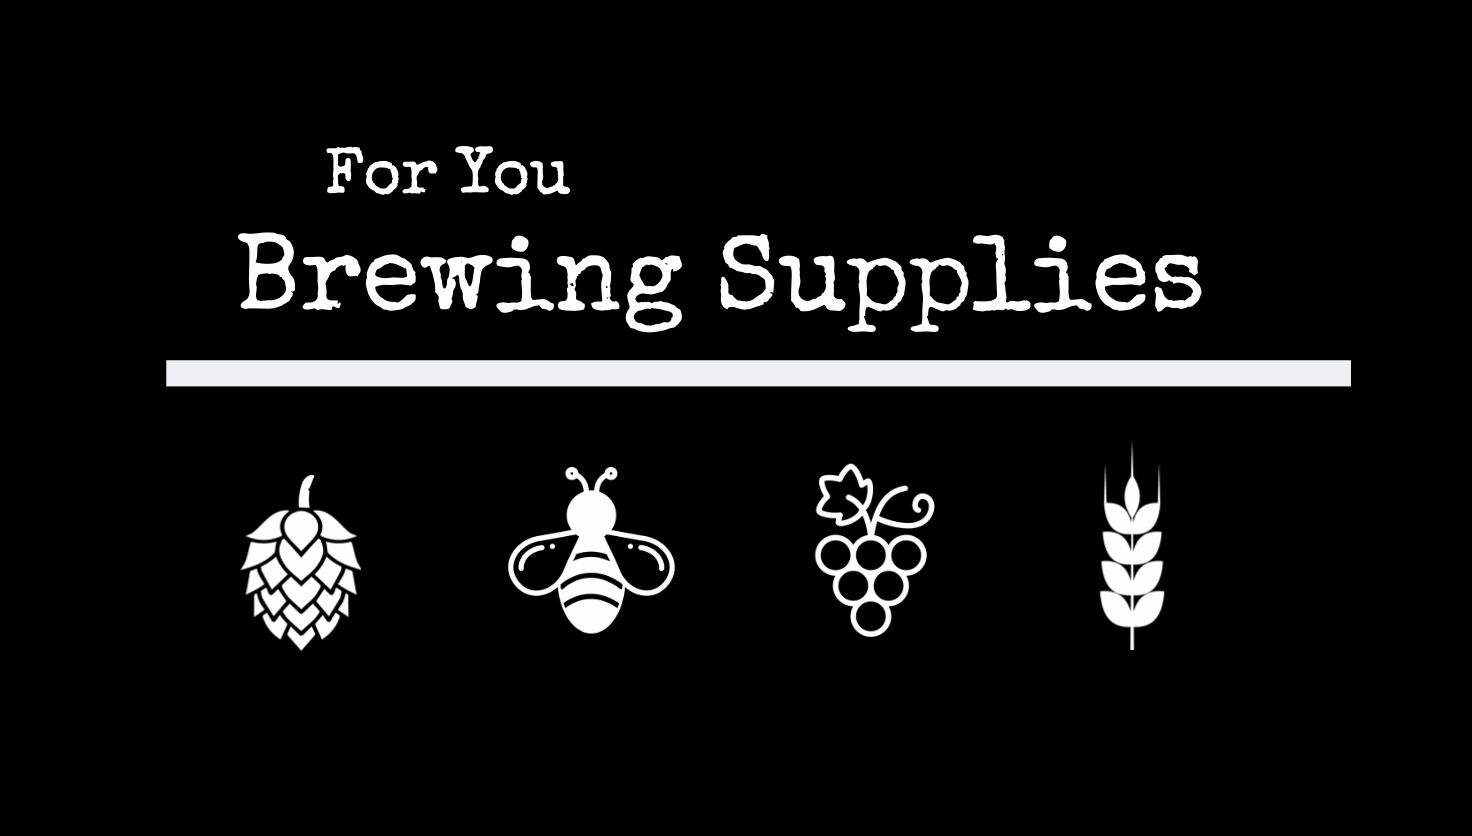 For You Brewing Supplies Logo